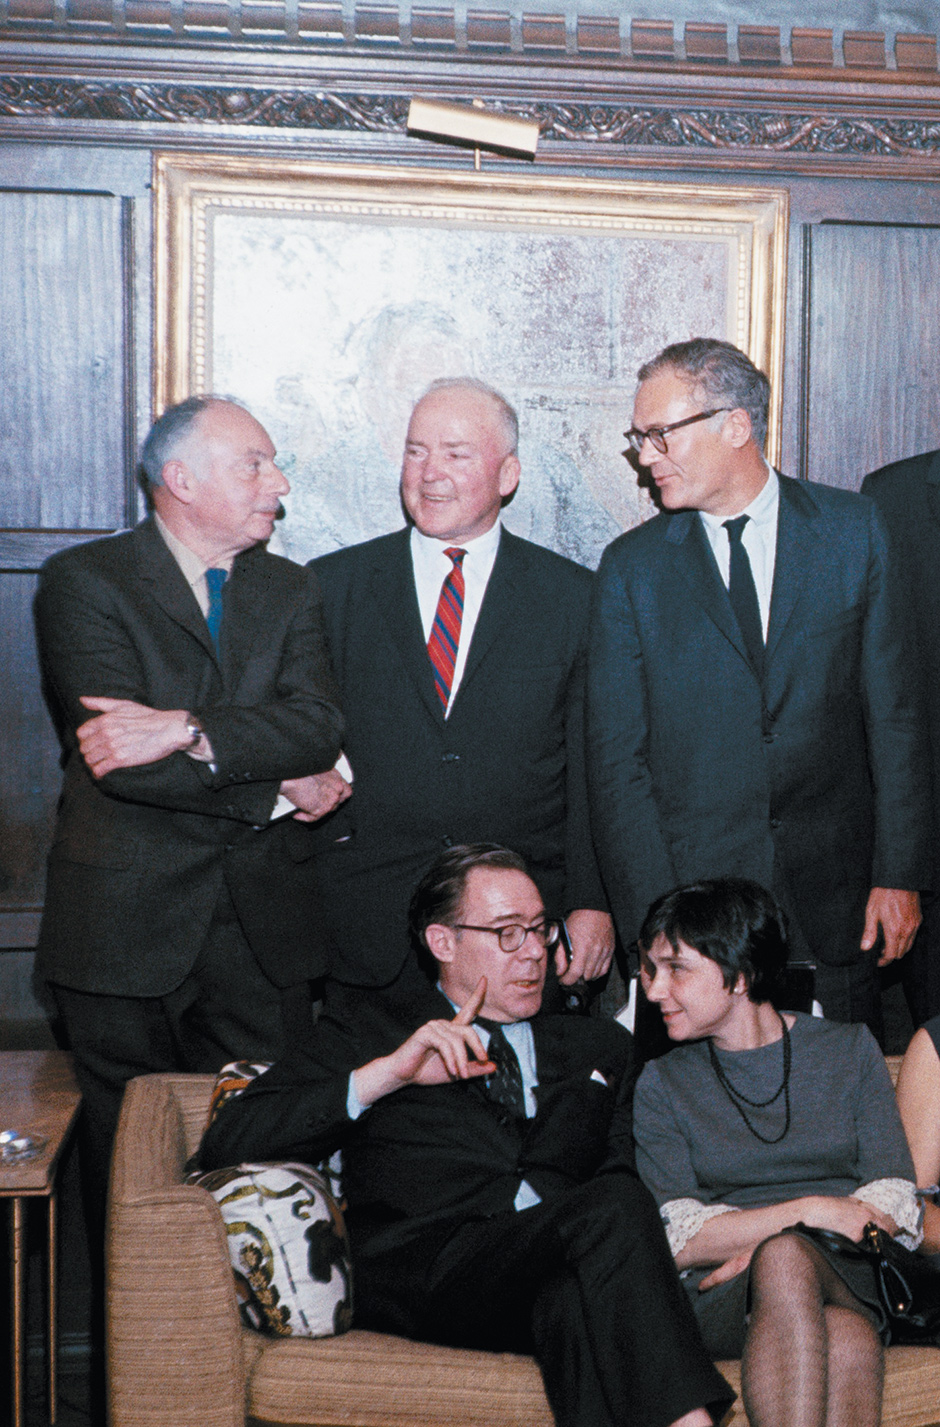 John Berryman and Adrienne Rich (seated), with Stanley Kunitz, Richard Eberhart, and Robert Lowell (standing), at a memorial tribute to Randall Jarrell at Yale University, New Haven, Connecticut, February 1966